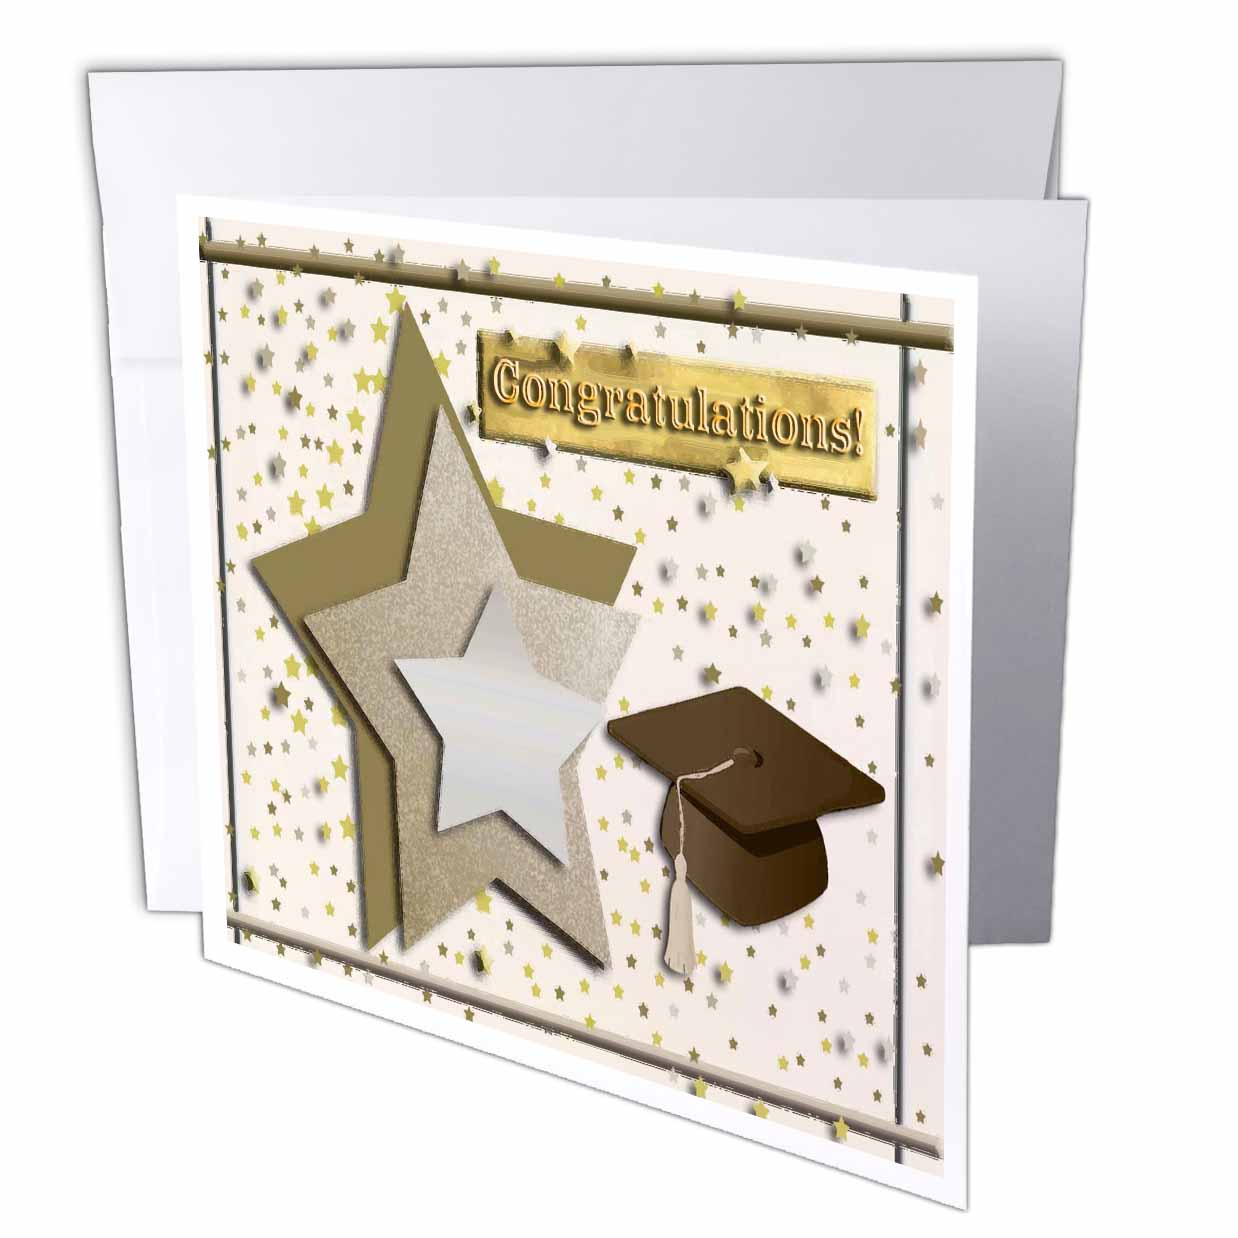 Image of 3dRose Congratulations Graduation, Stars, Cap with Tassel, Greeting Cards, 6 x 6 inches, set of 12